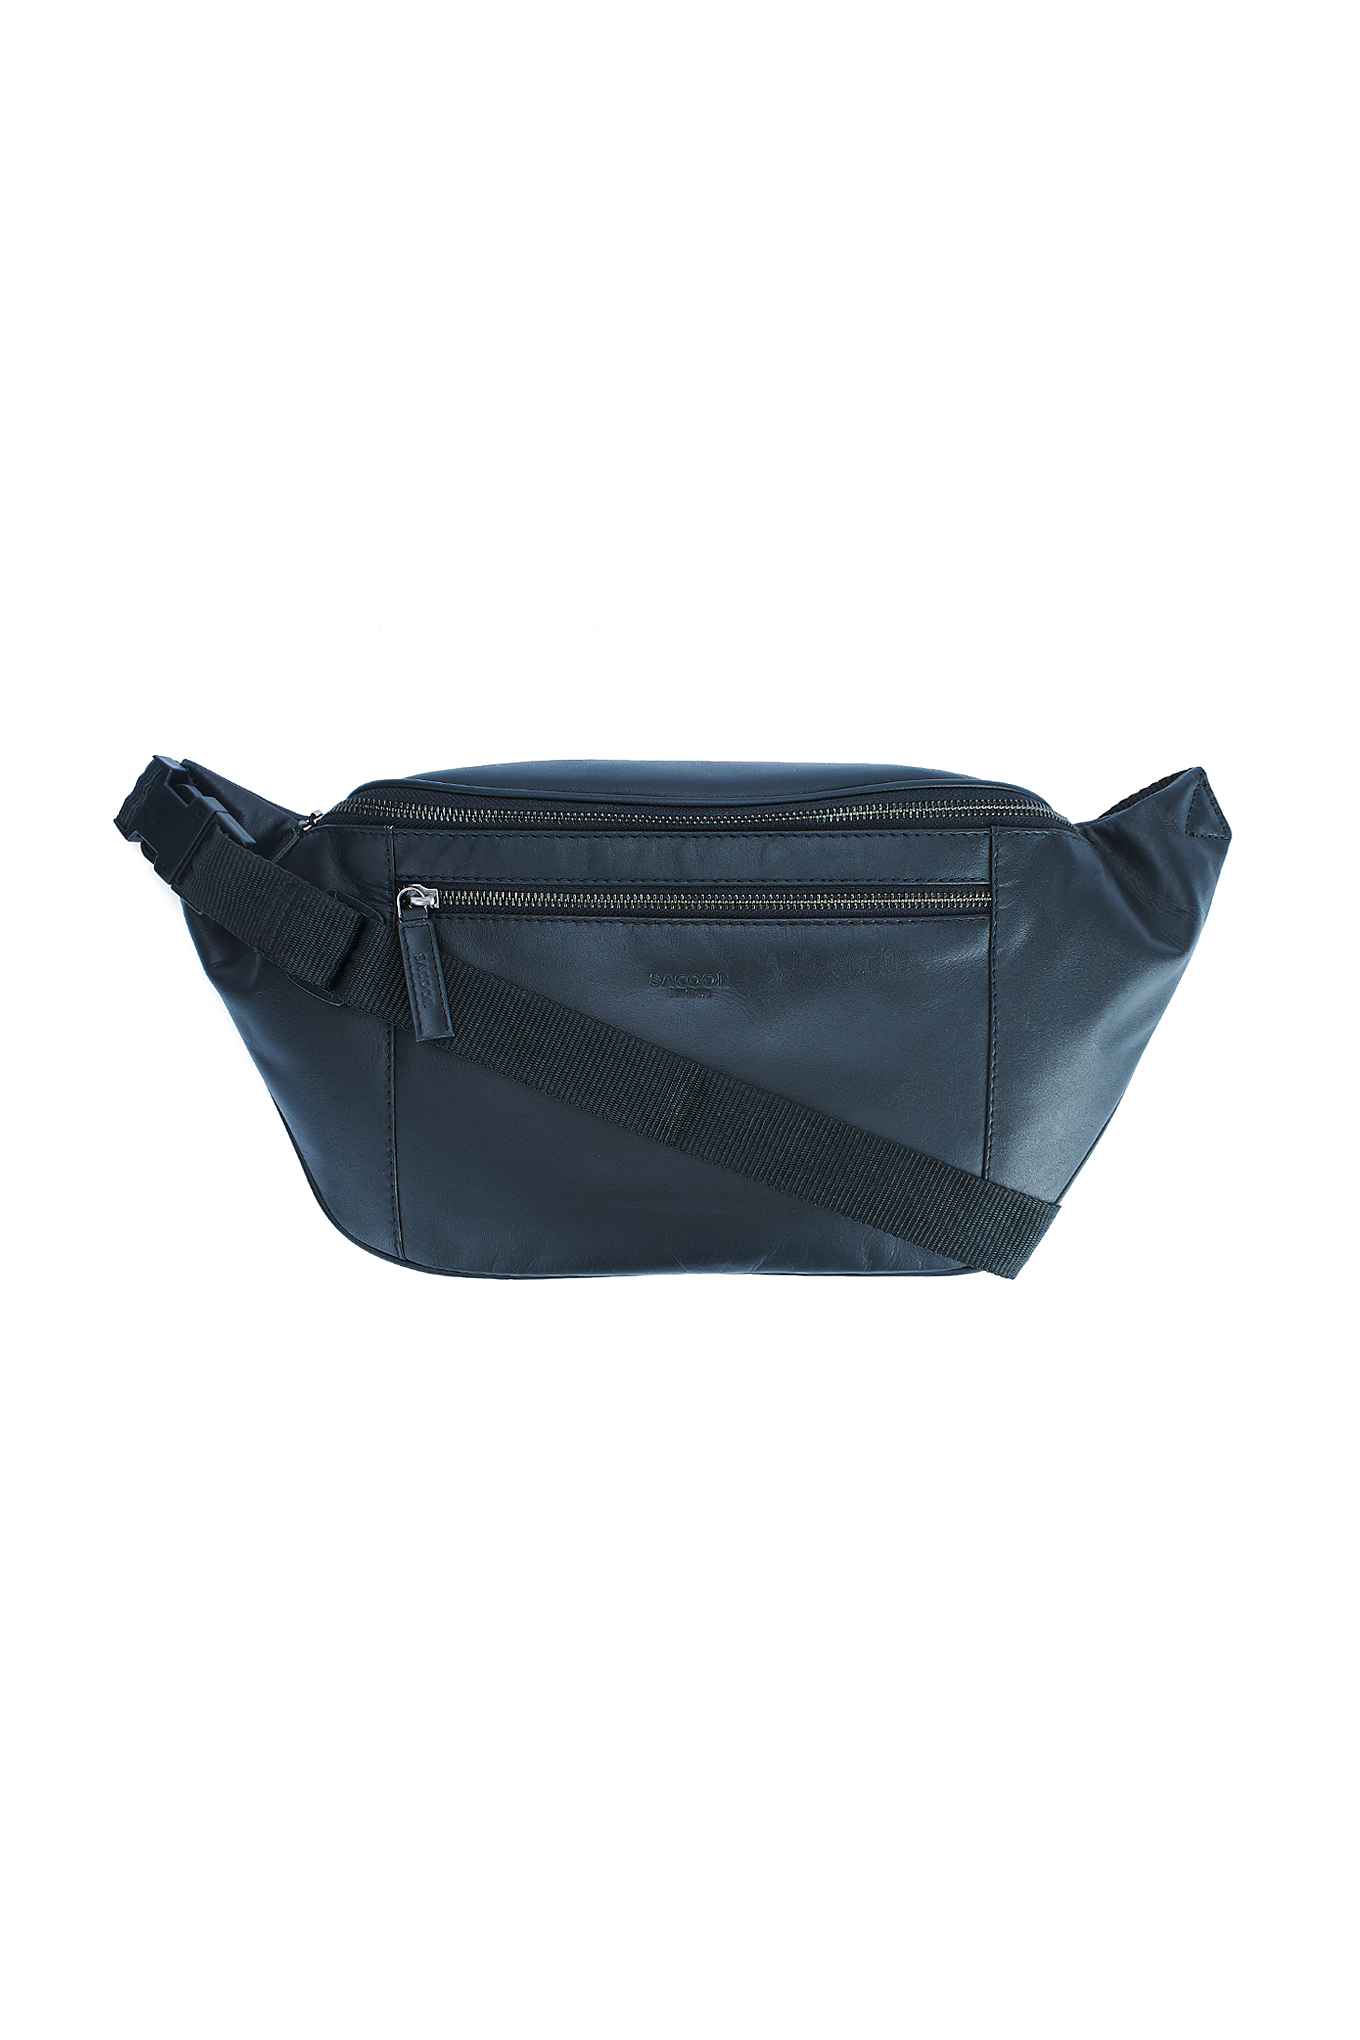 Bag Black Casual Man